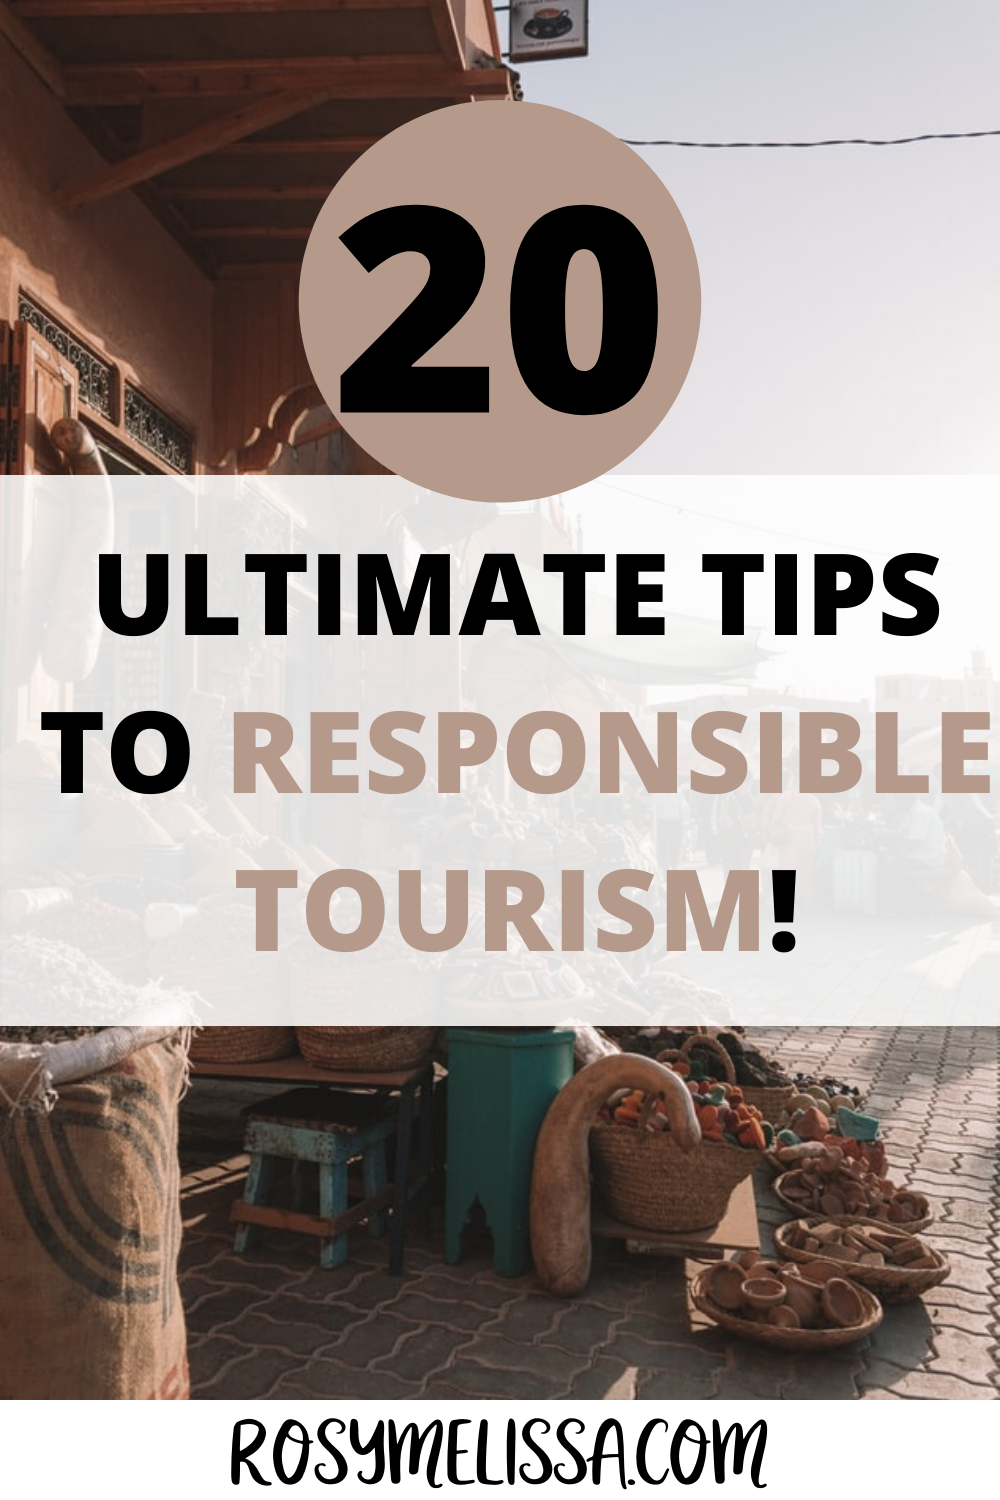 a full guide to responsible tourism and responsible tourism, 20 tips to travel with positive impact